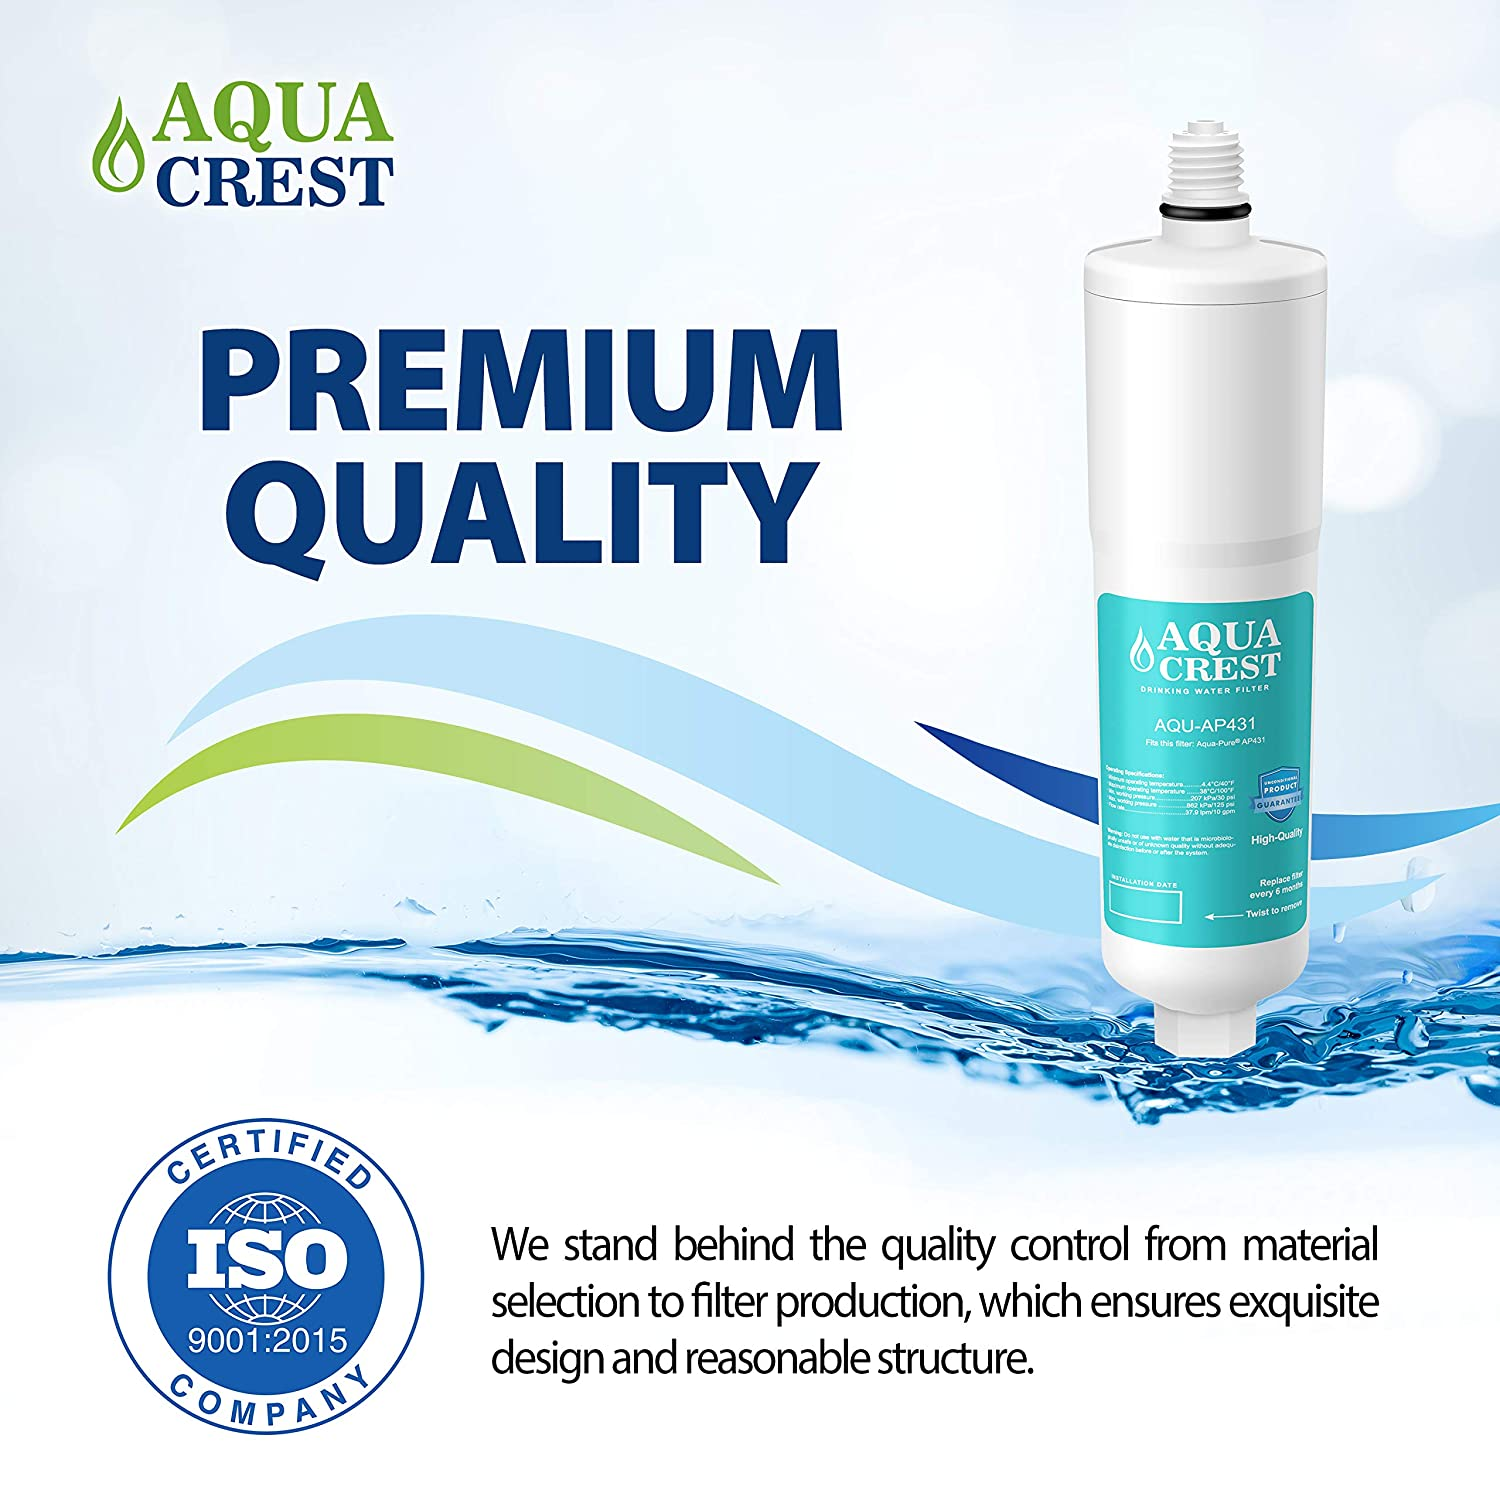 Pack of 3 AQUA CREST AQUACREST Replacement AP431 Cartridge Compatible with Aqua-Pure AP431 Hot Water Scale Inhibitor for AP430SS